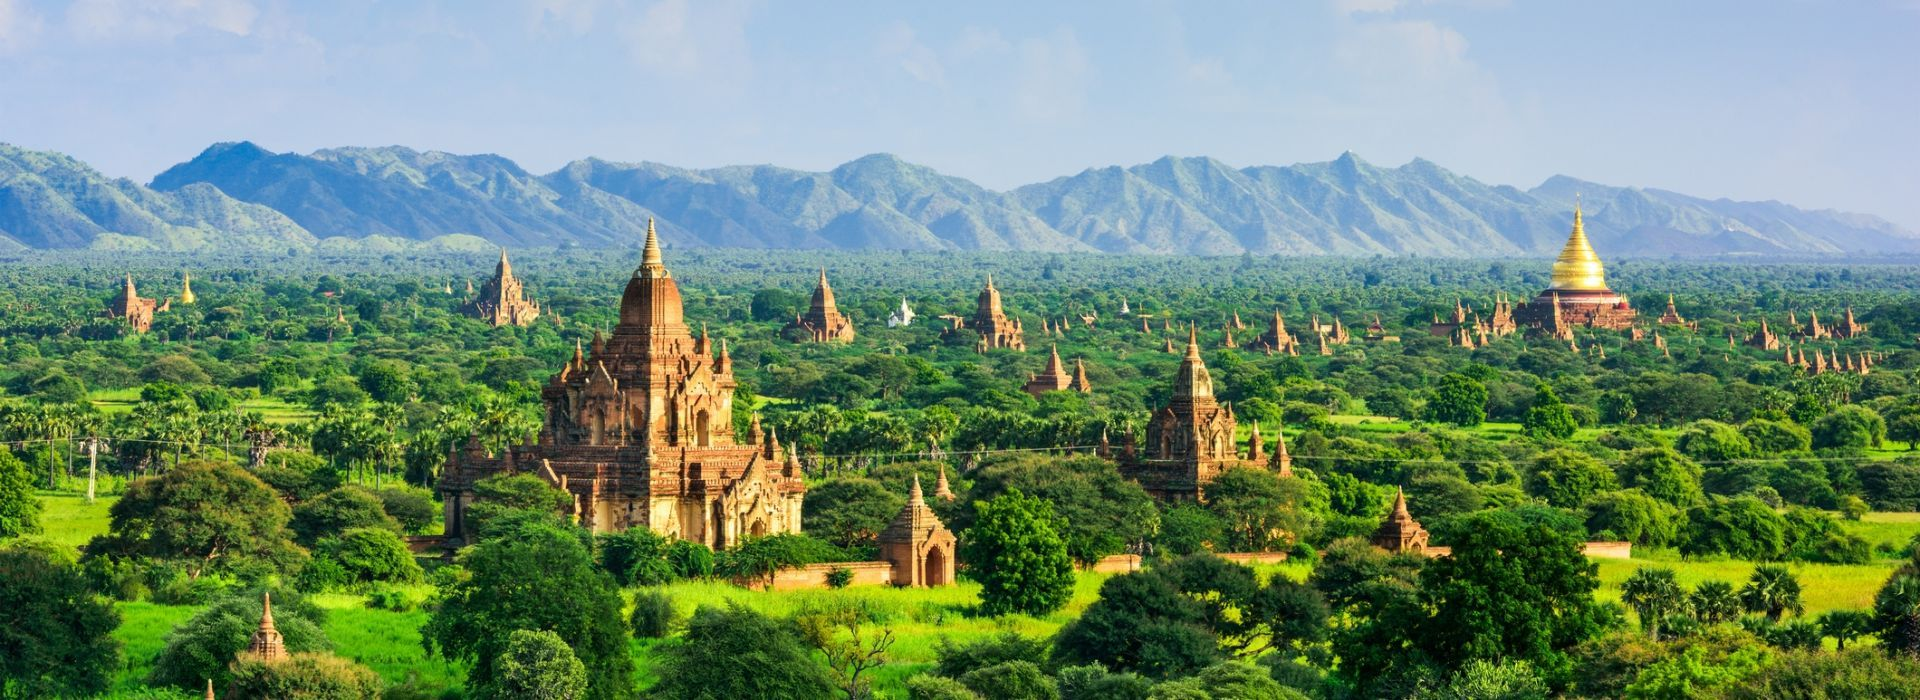 Cultural, religious and historic sites Tours in Bagan